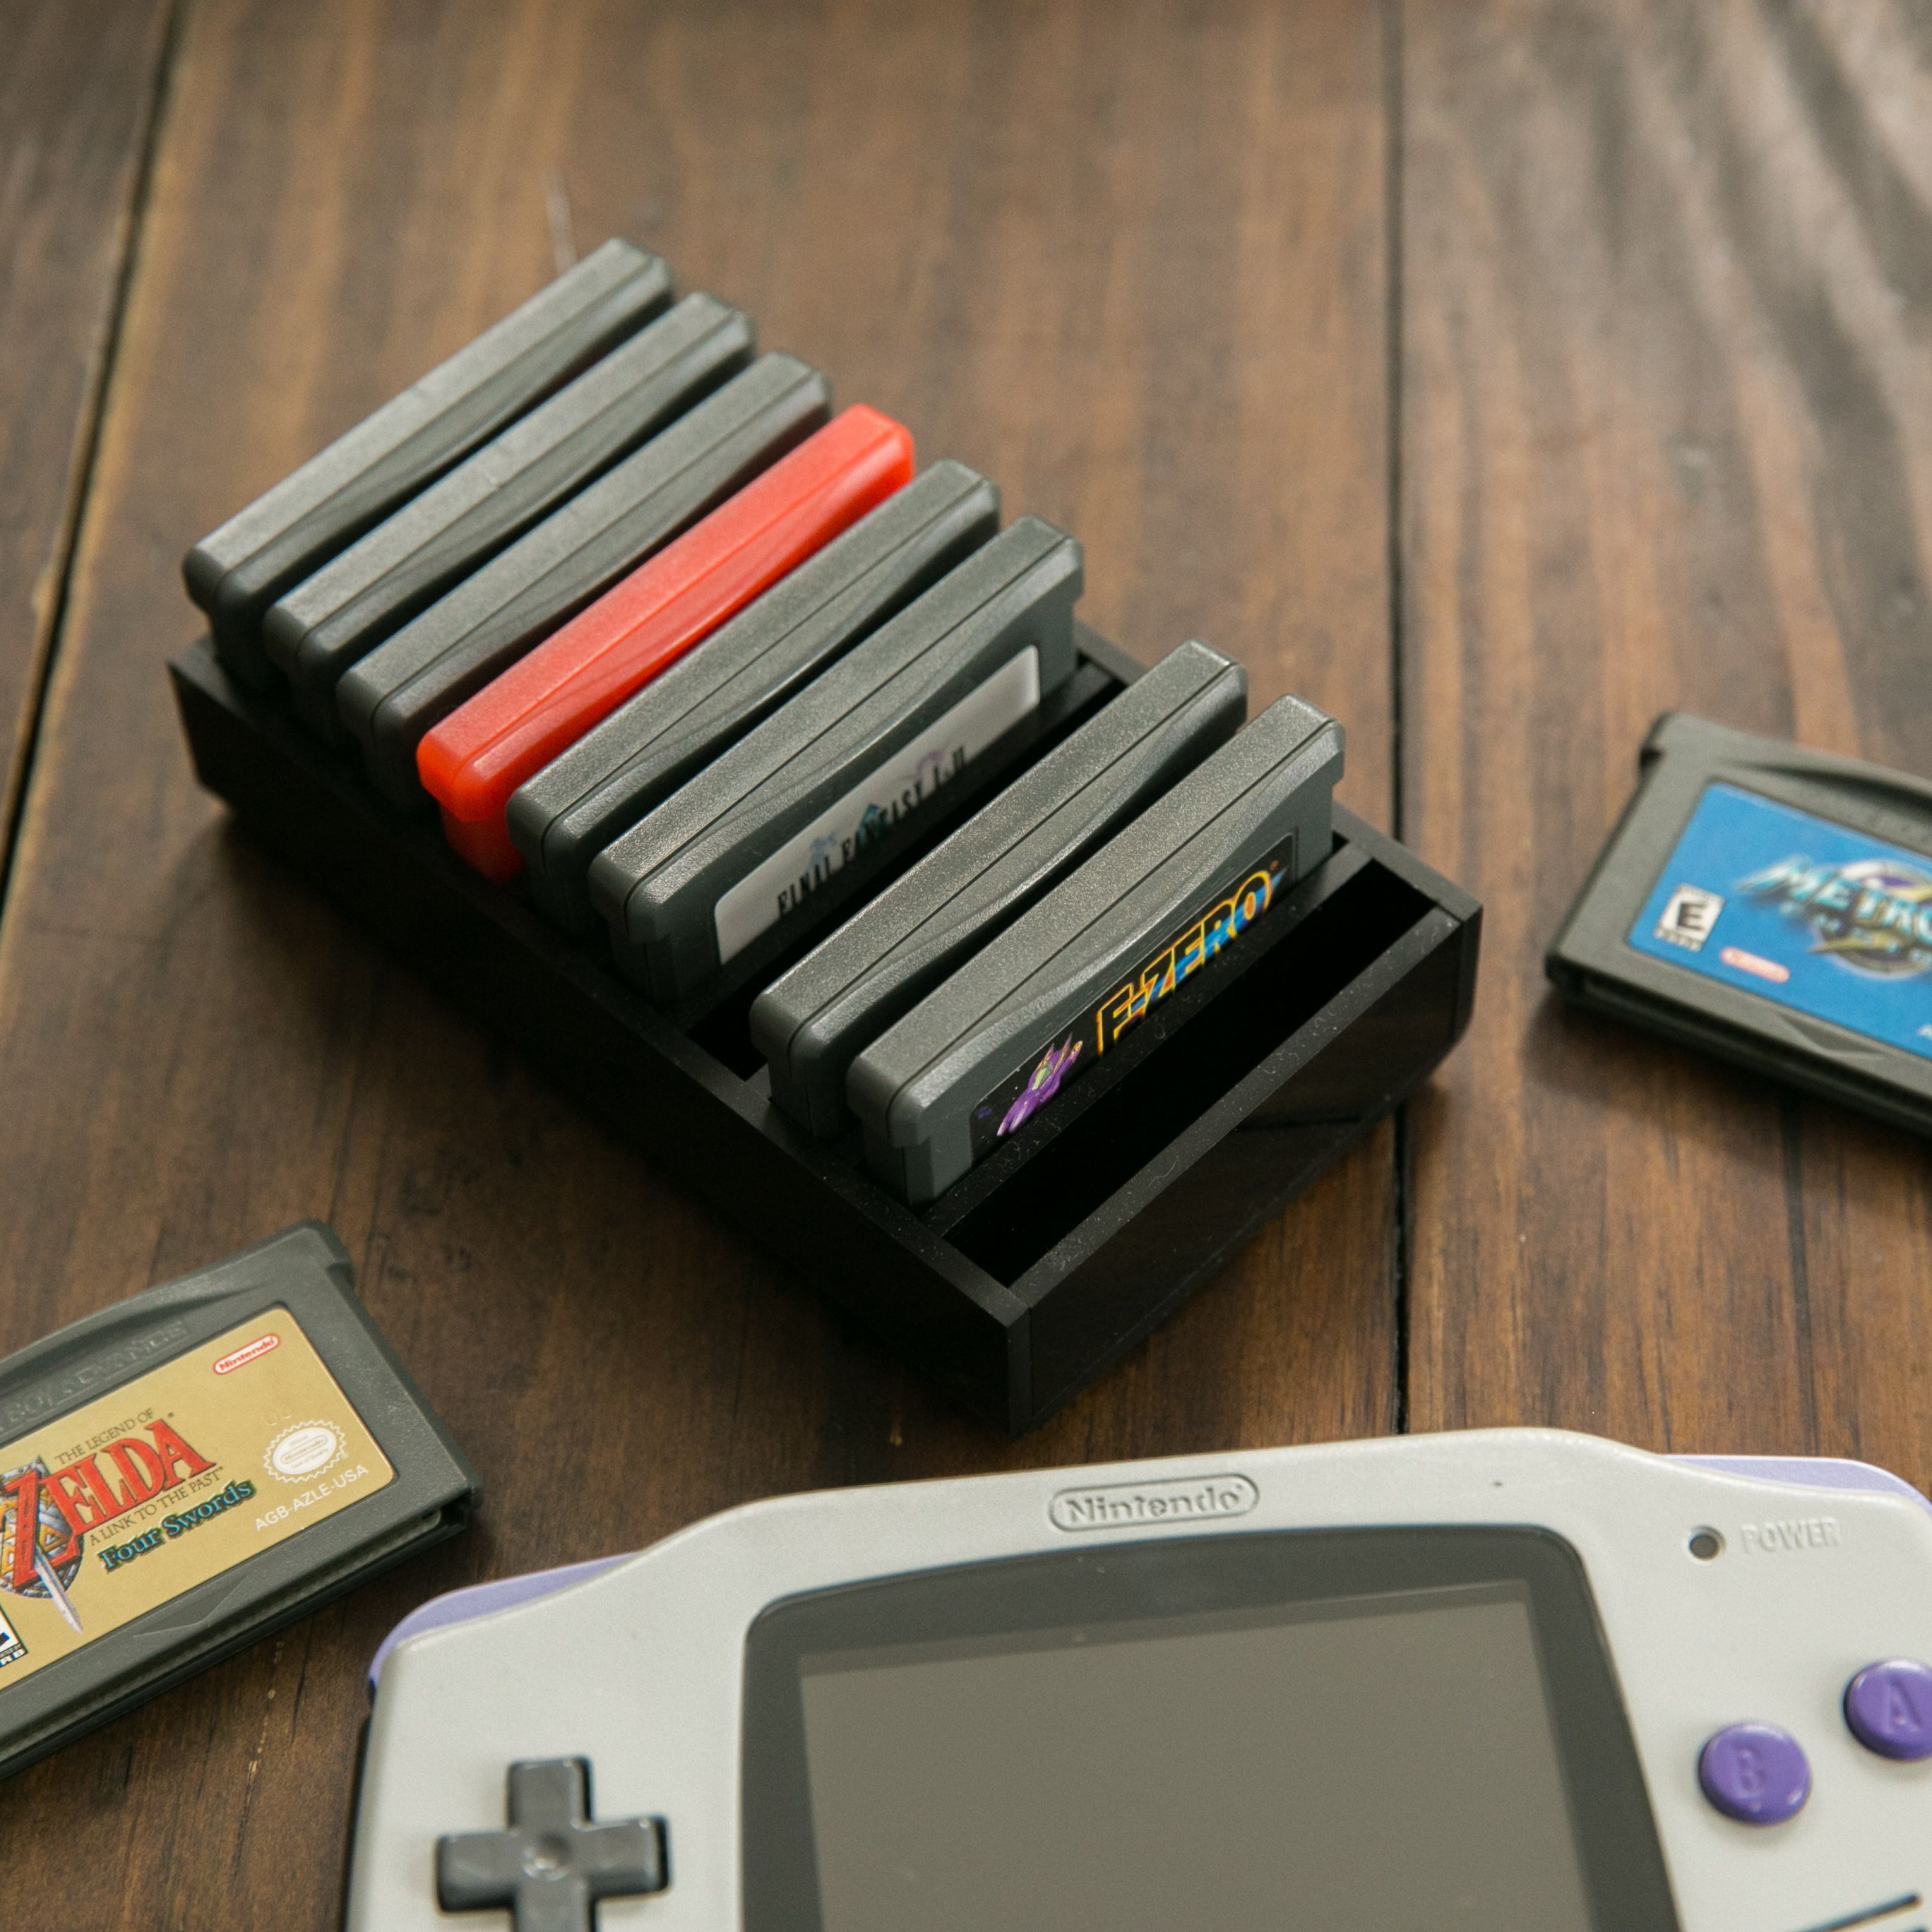 BitLounger GBBITN Storage for retro video games such as Nintendo Gameboy,  Gameboy Advance, Gameboy Color